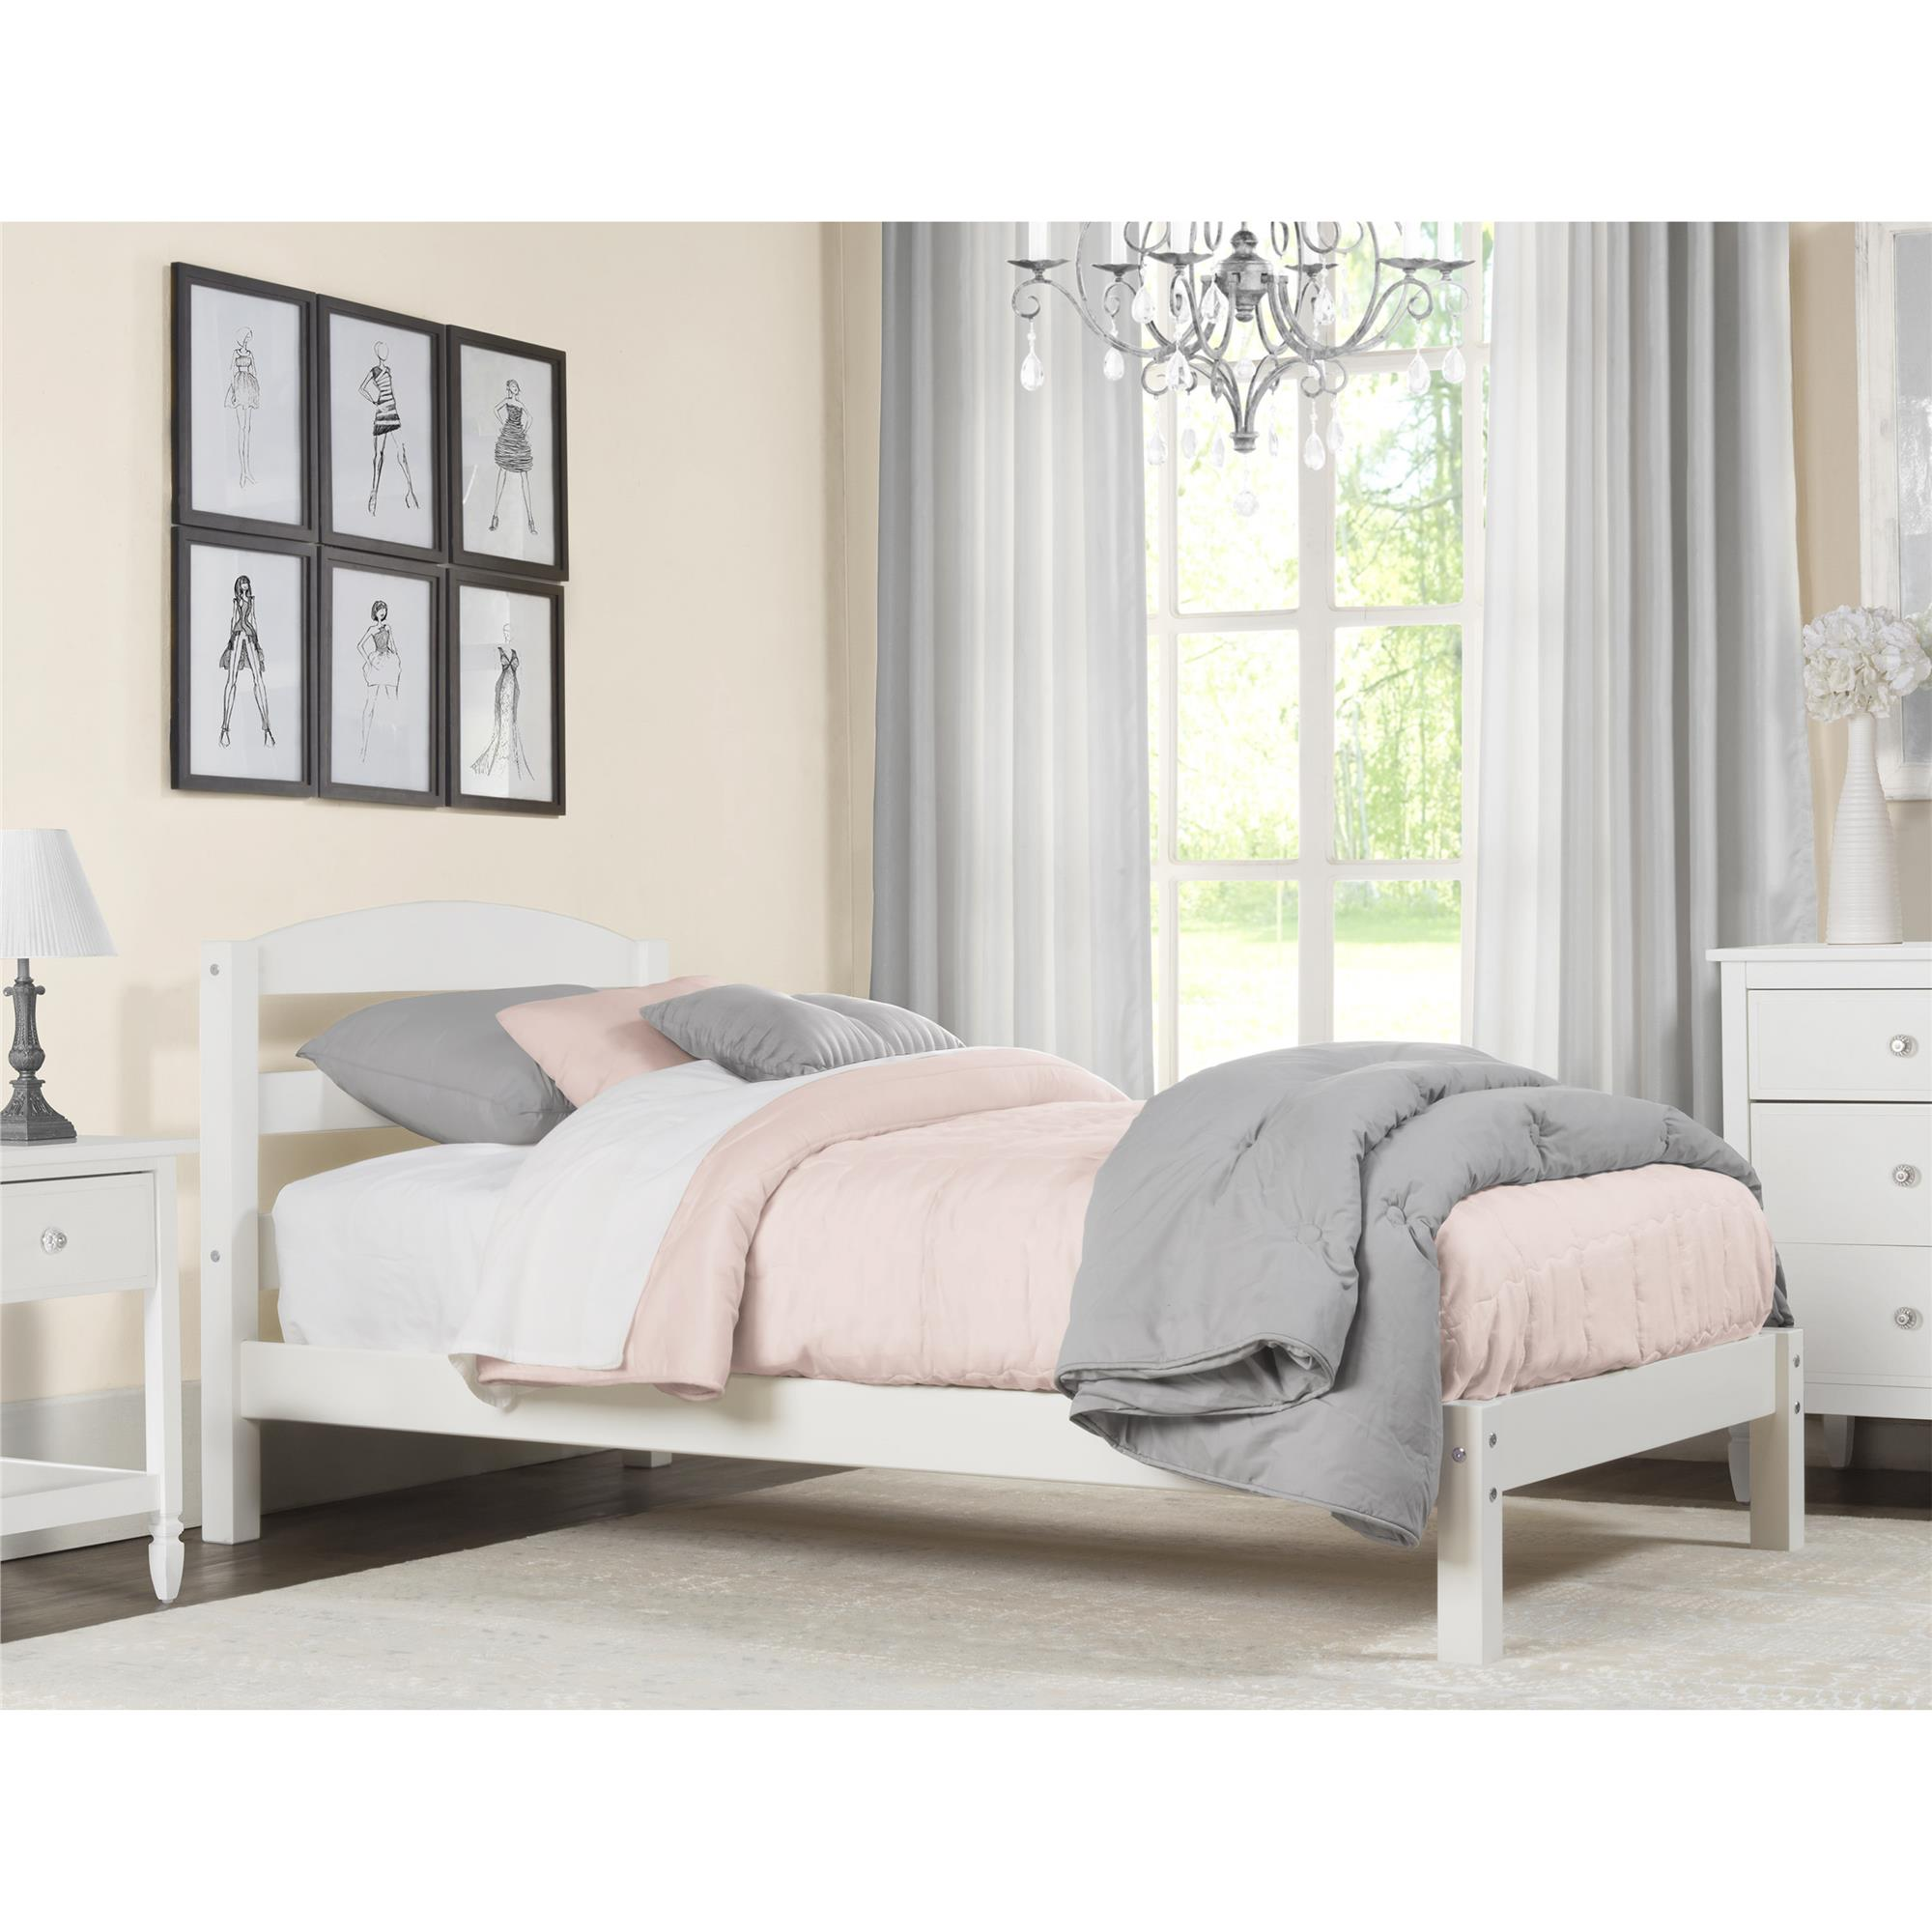 Gardens Leighton Twin Size Bed Frame